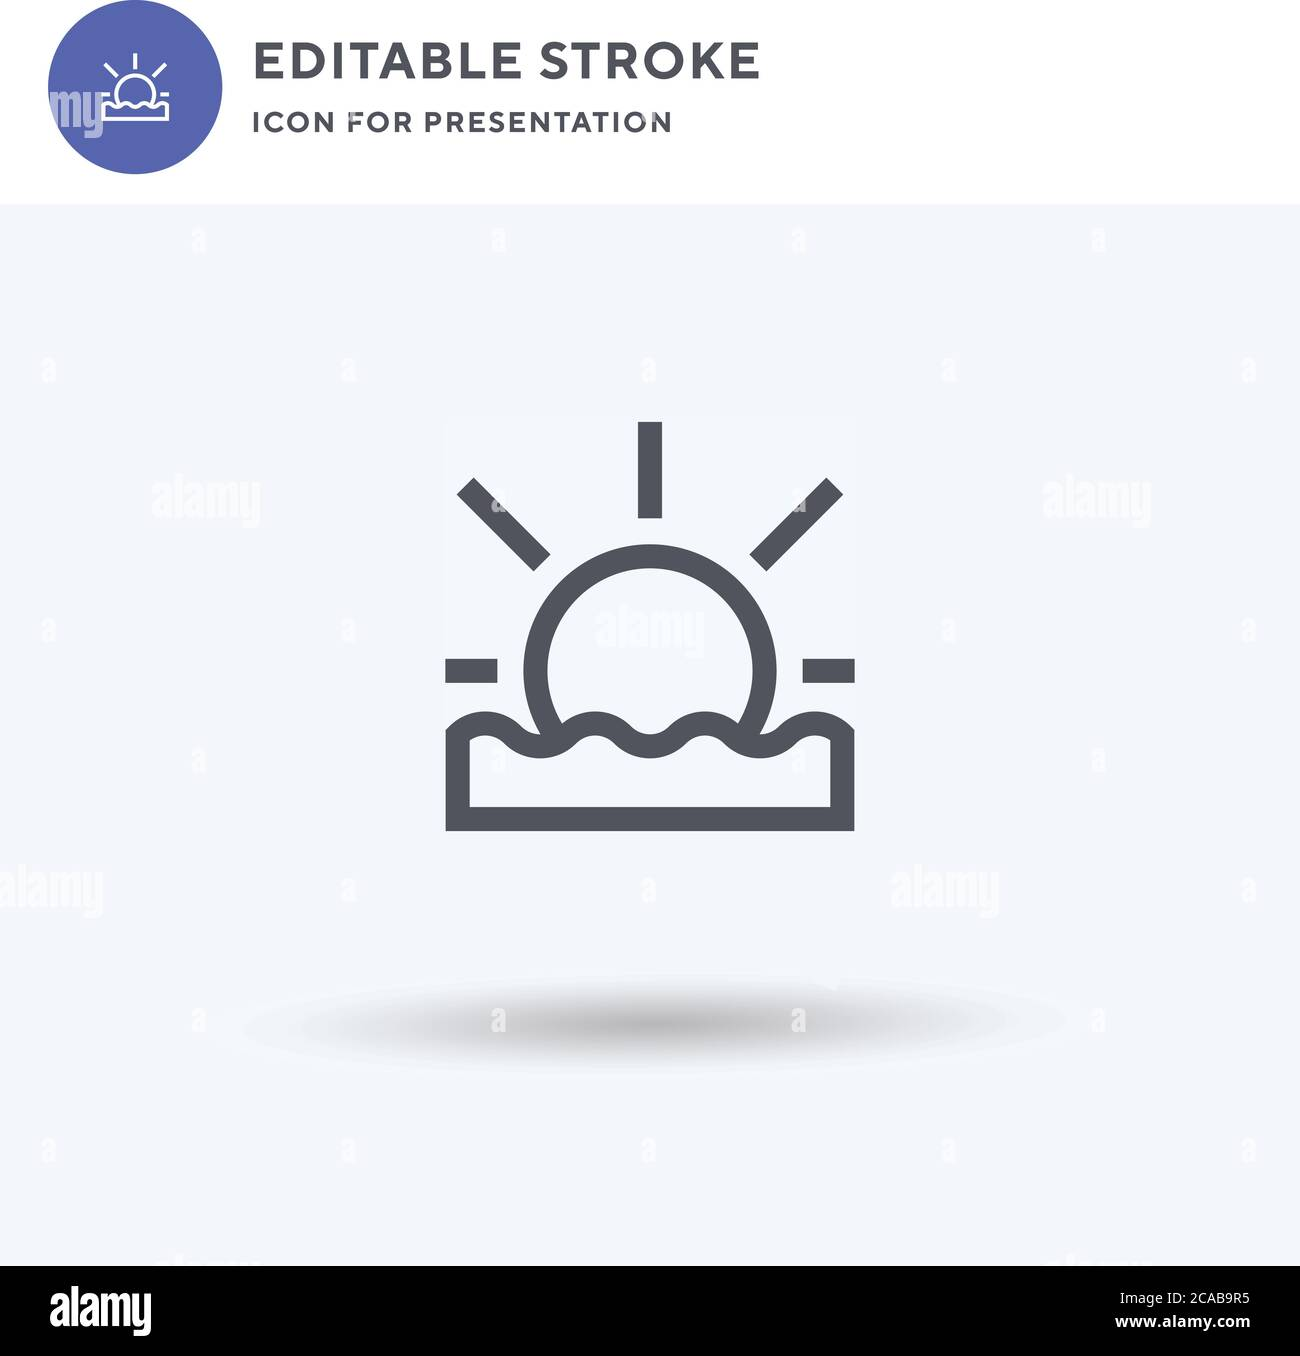 sunset icon vector filled flat sign solid pictogram isolated on white logo illustration sunset icon for presentation stock vector image art alamy alamy